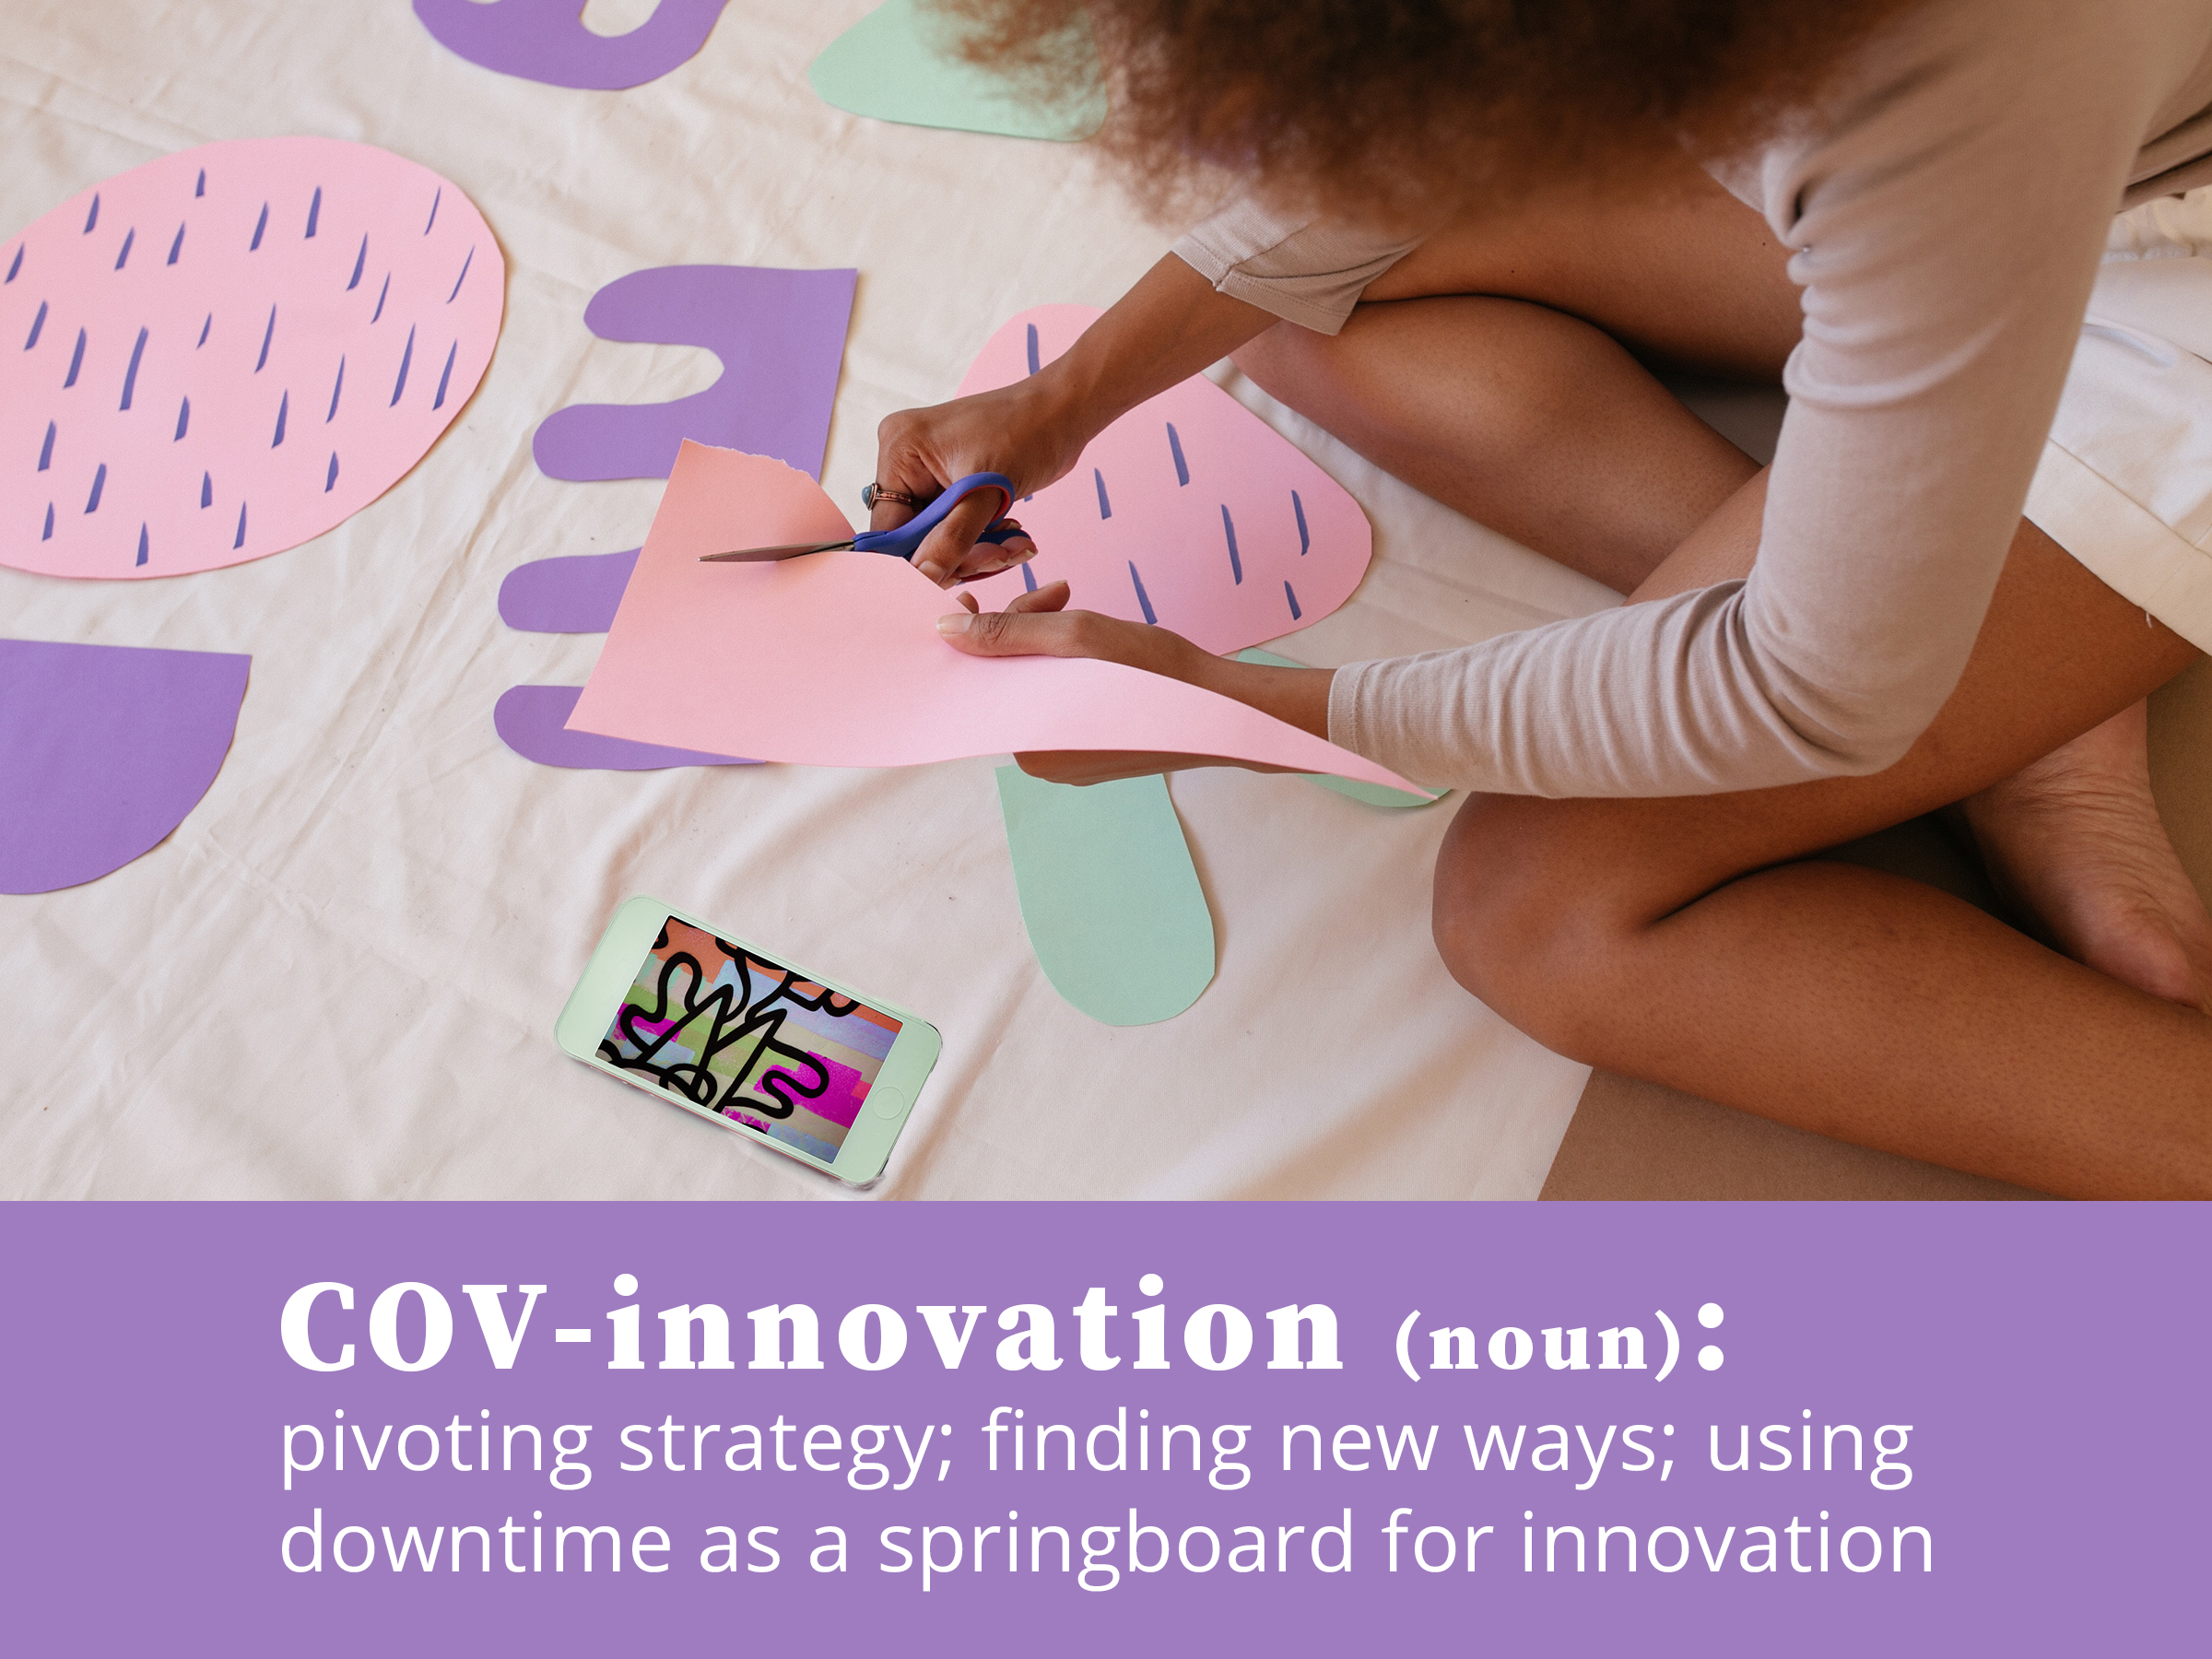 COV-innovation (noun): pivoting strategy; finding new ways; using downtime as a springboard for innovation